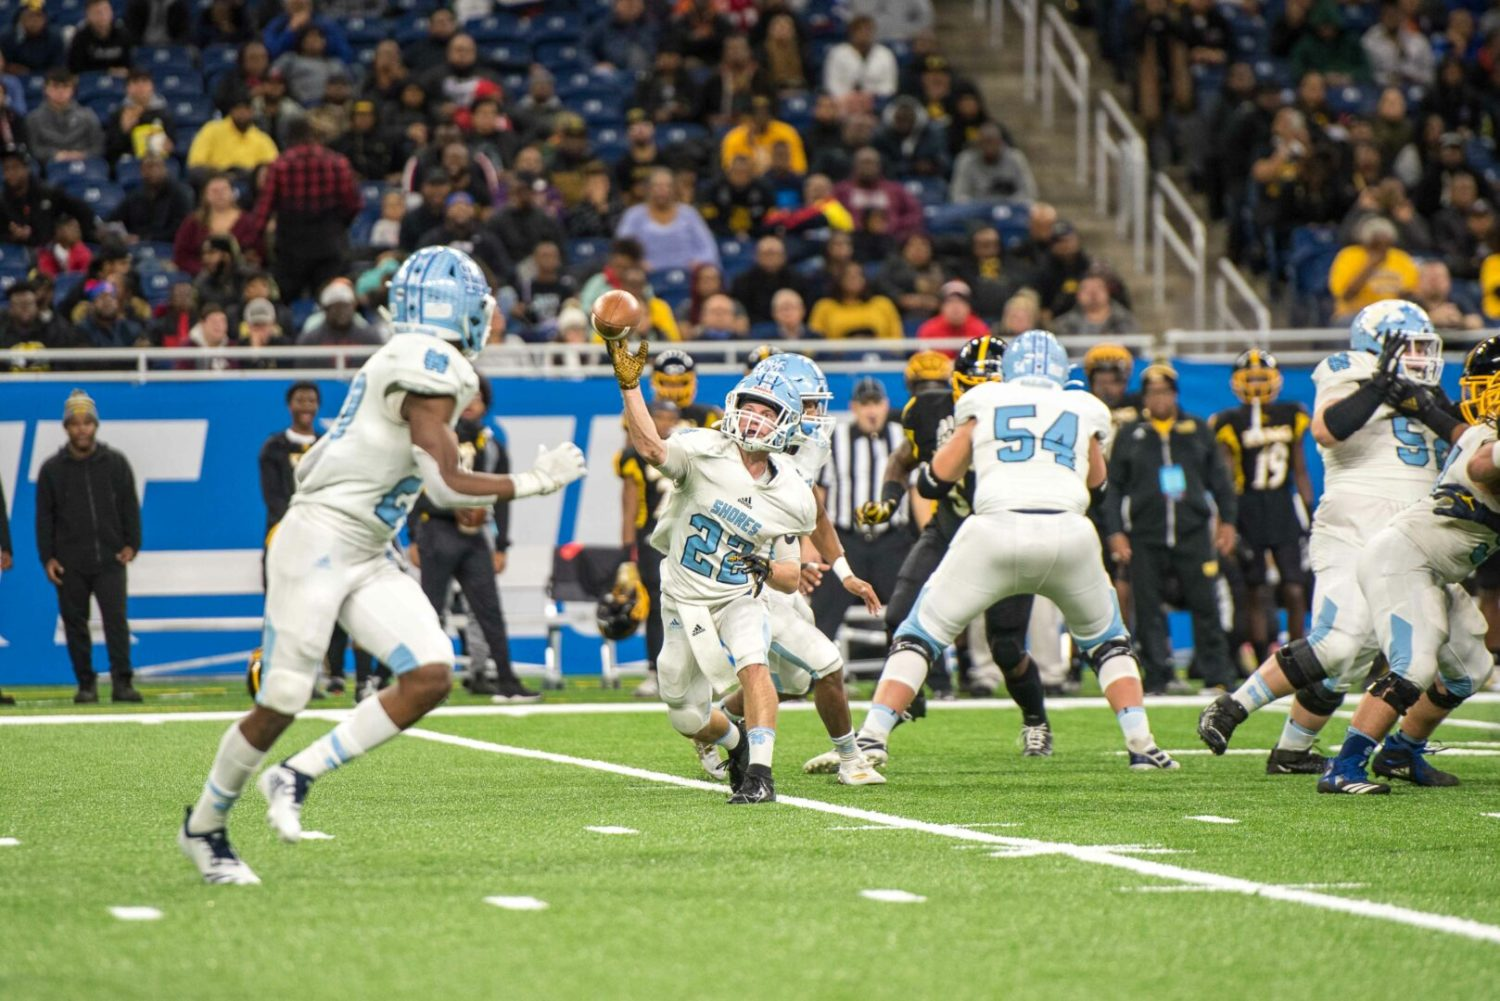 Backup QB Rose shines again, leading Mona Shores to first state football championship